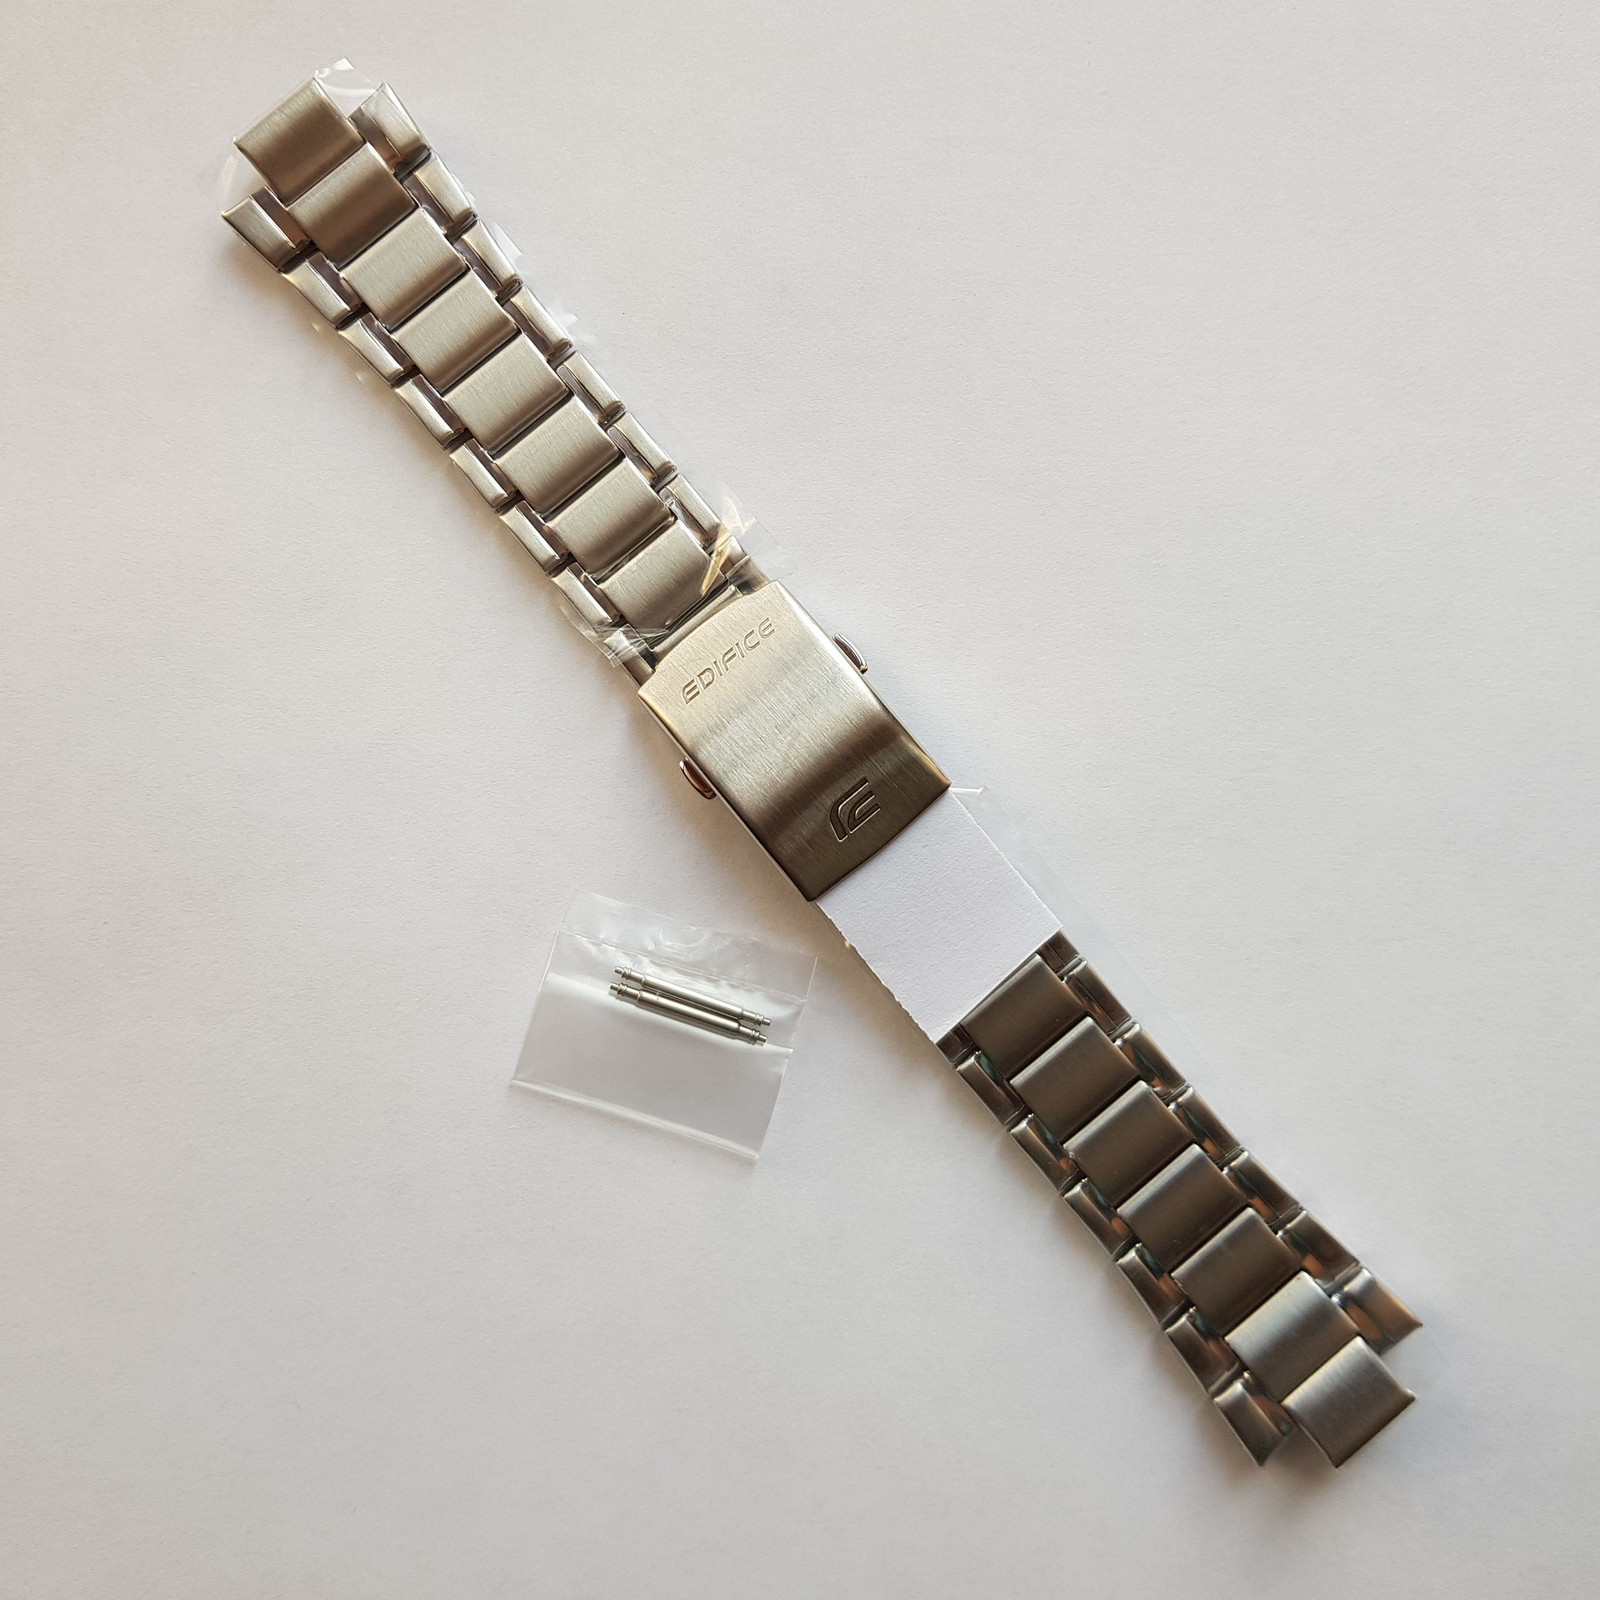 Primary image for Genuine Replacement Watch Band 16mm Stainless Steel Bracelet Casio EFR-519D-1A